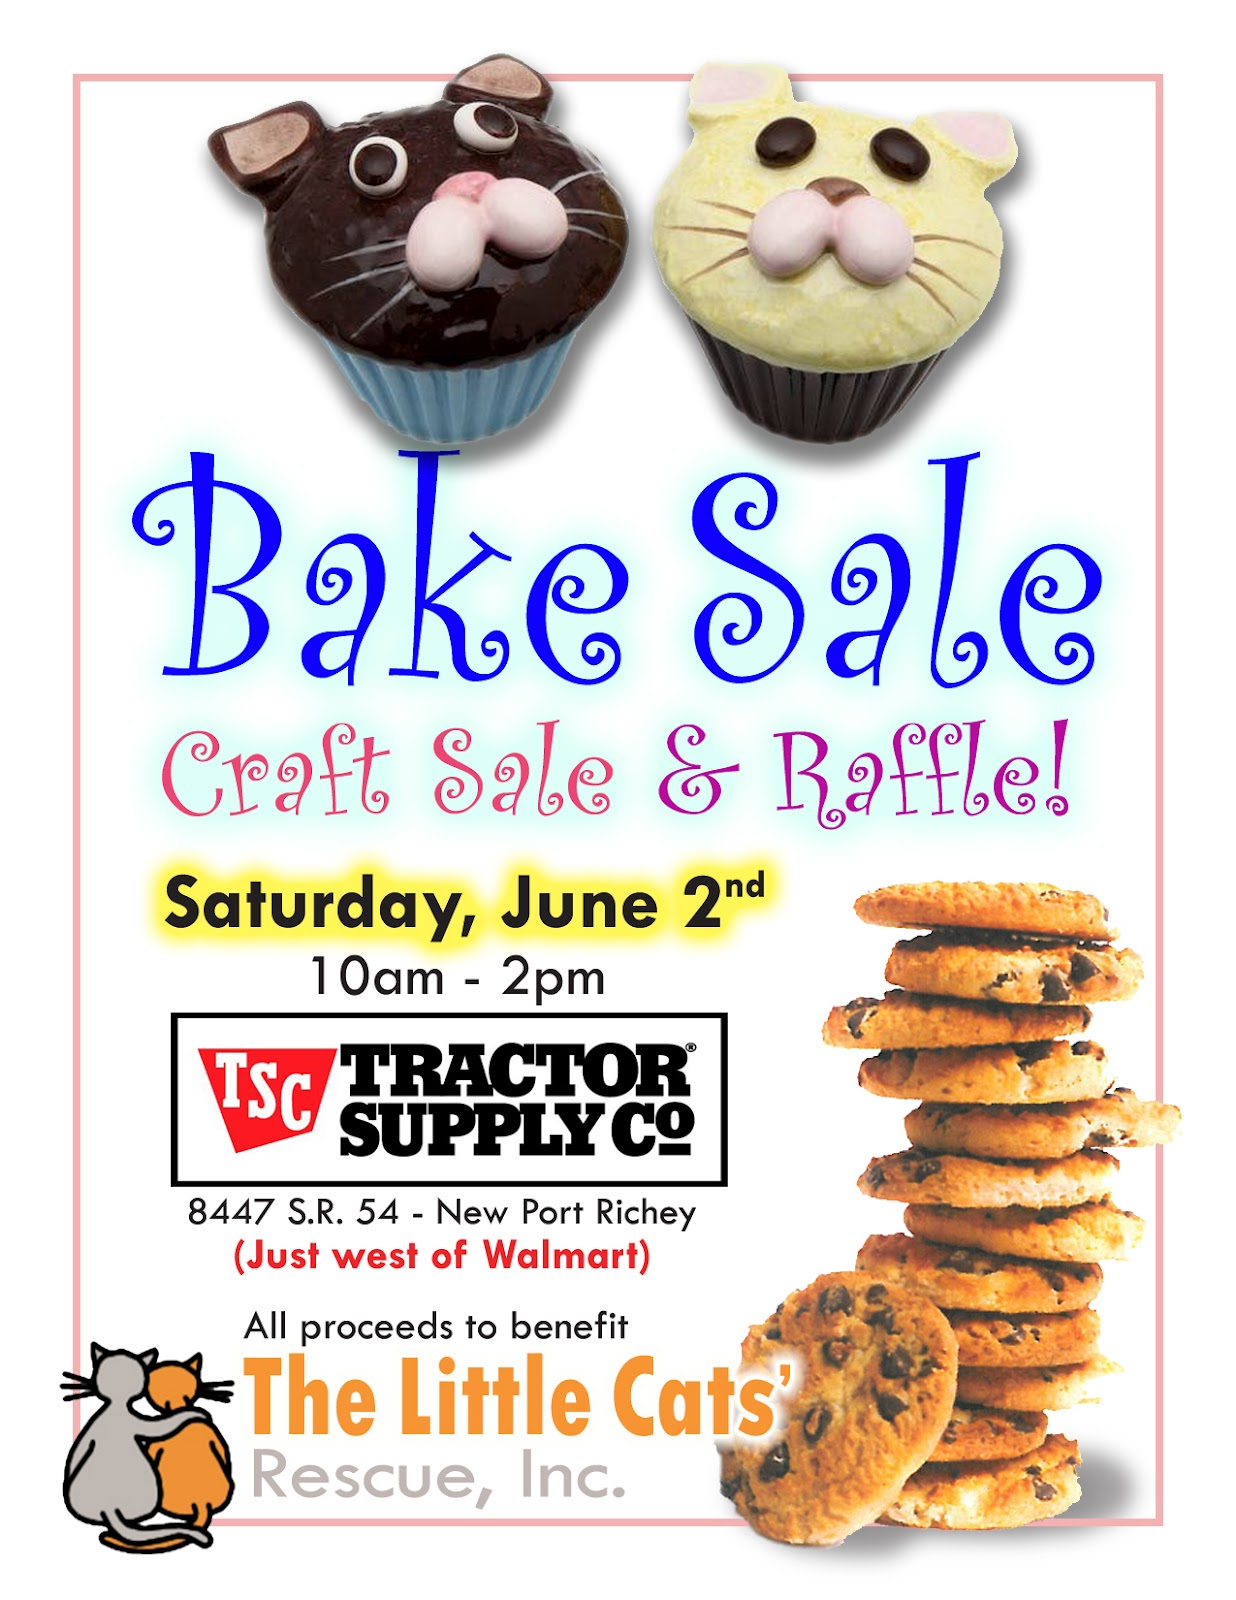 The Little Cats' Rescue: Bake Sale, Craft Sale & Raffle!